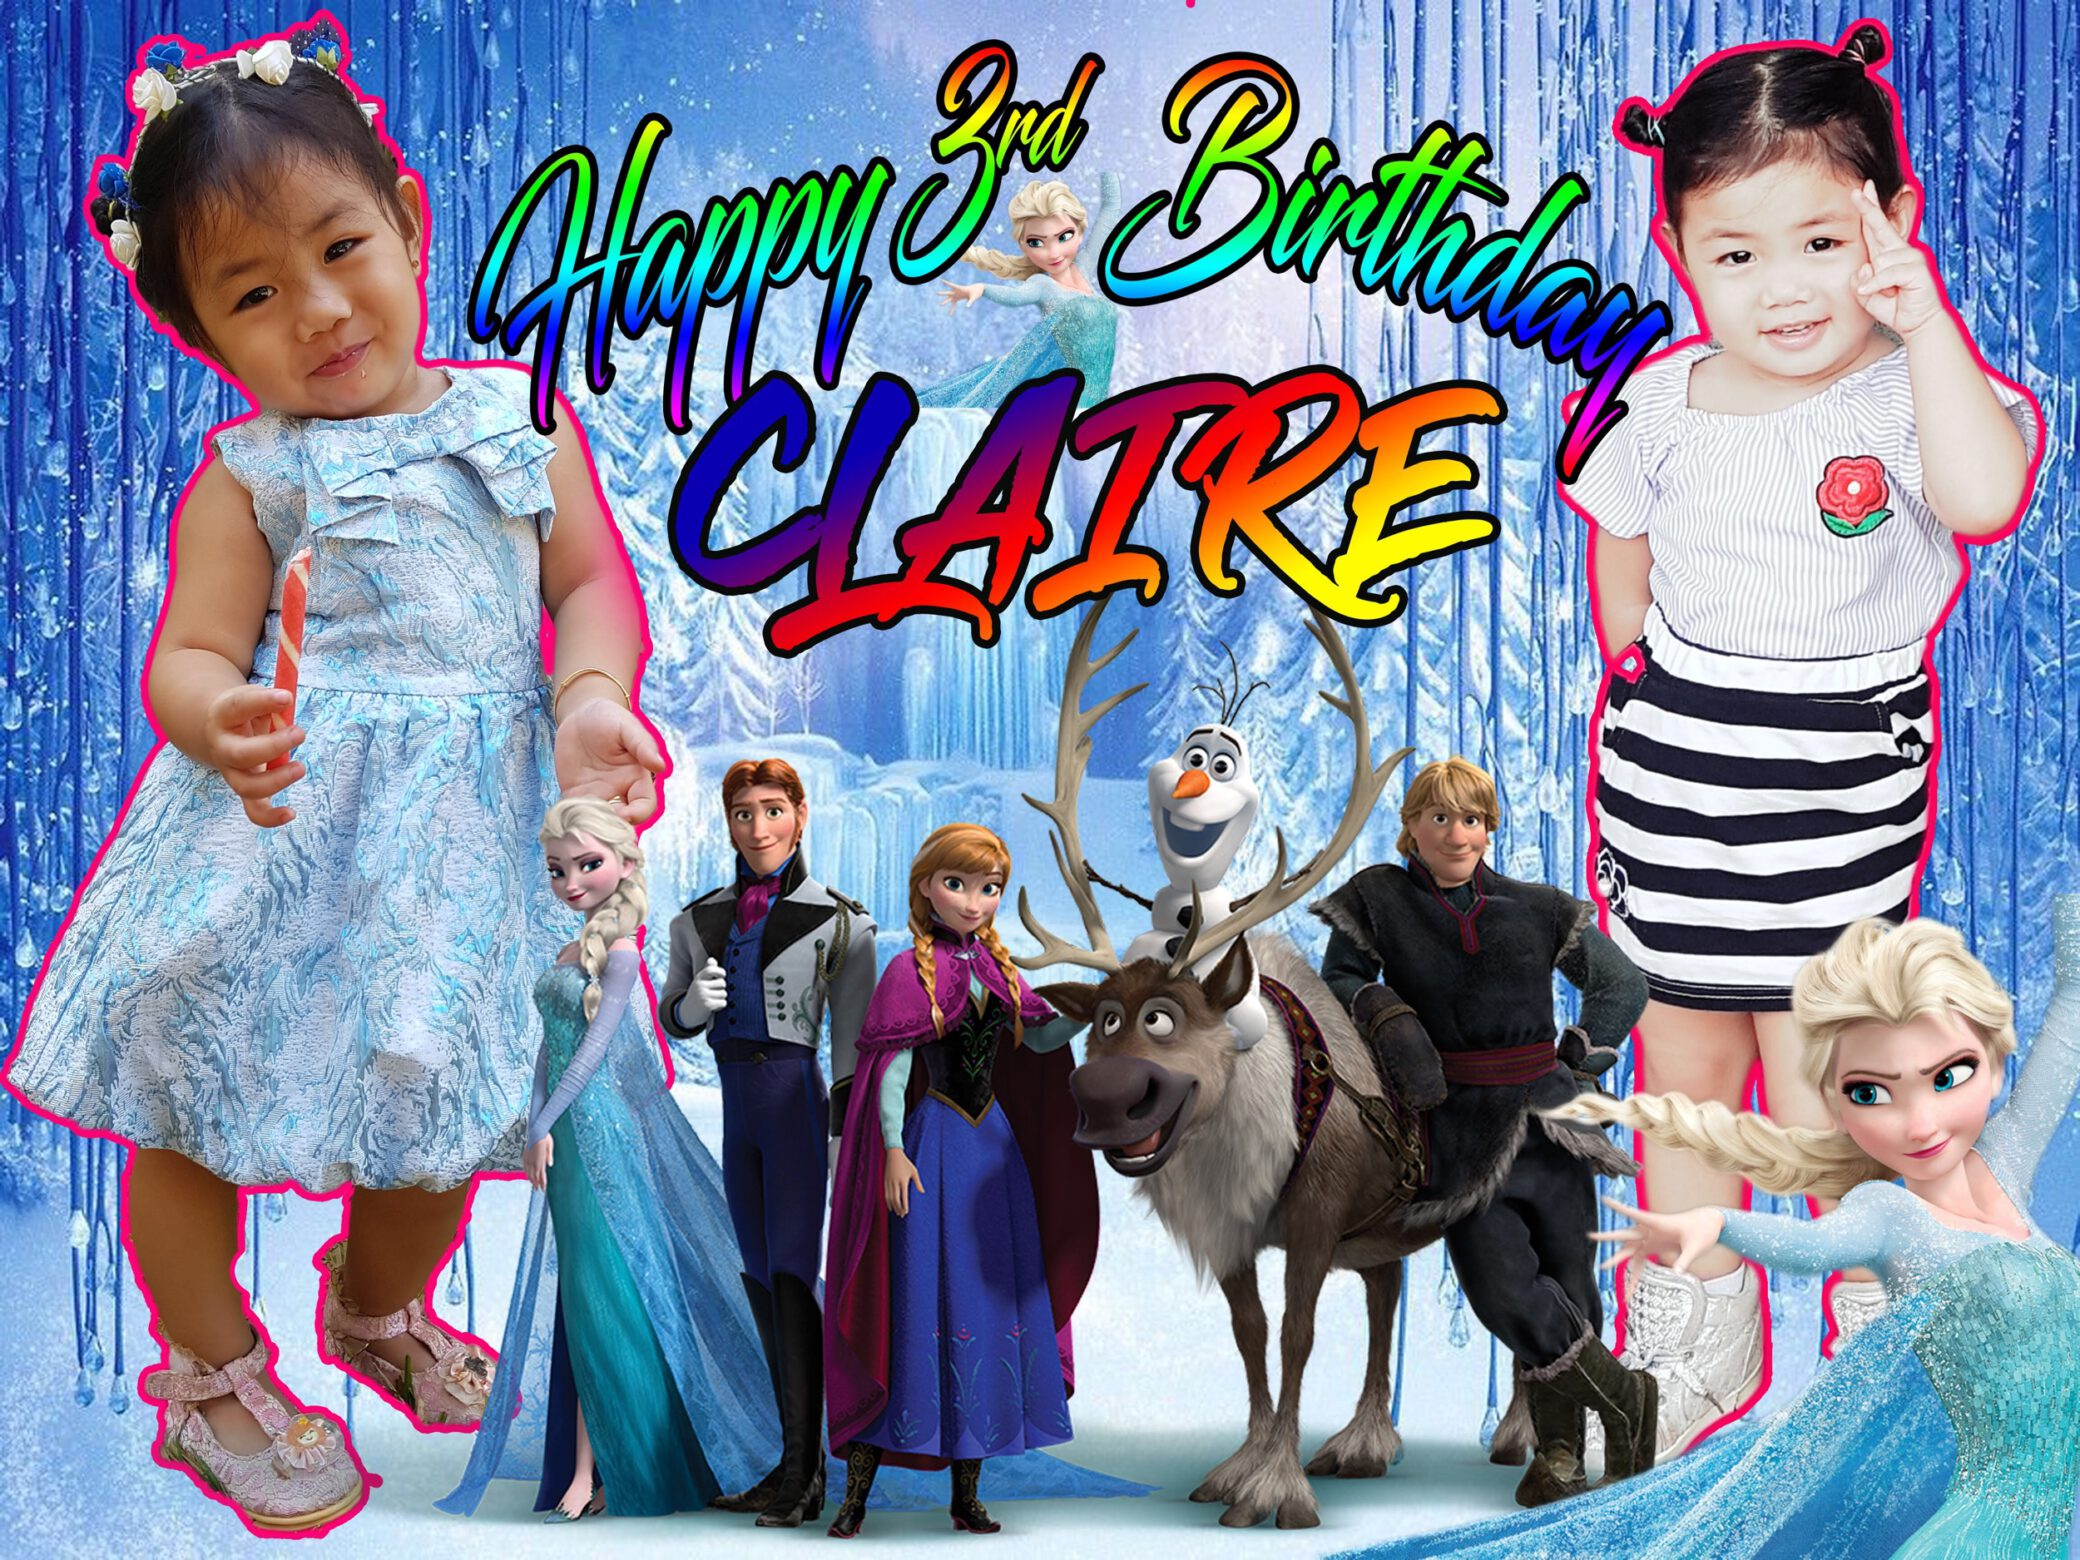 3rd Birthday Tarpaulin Design in Frozen Theme